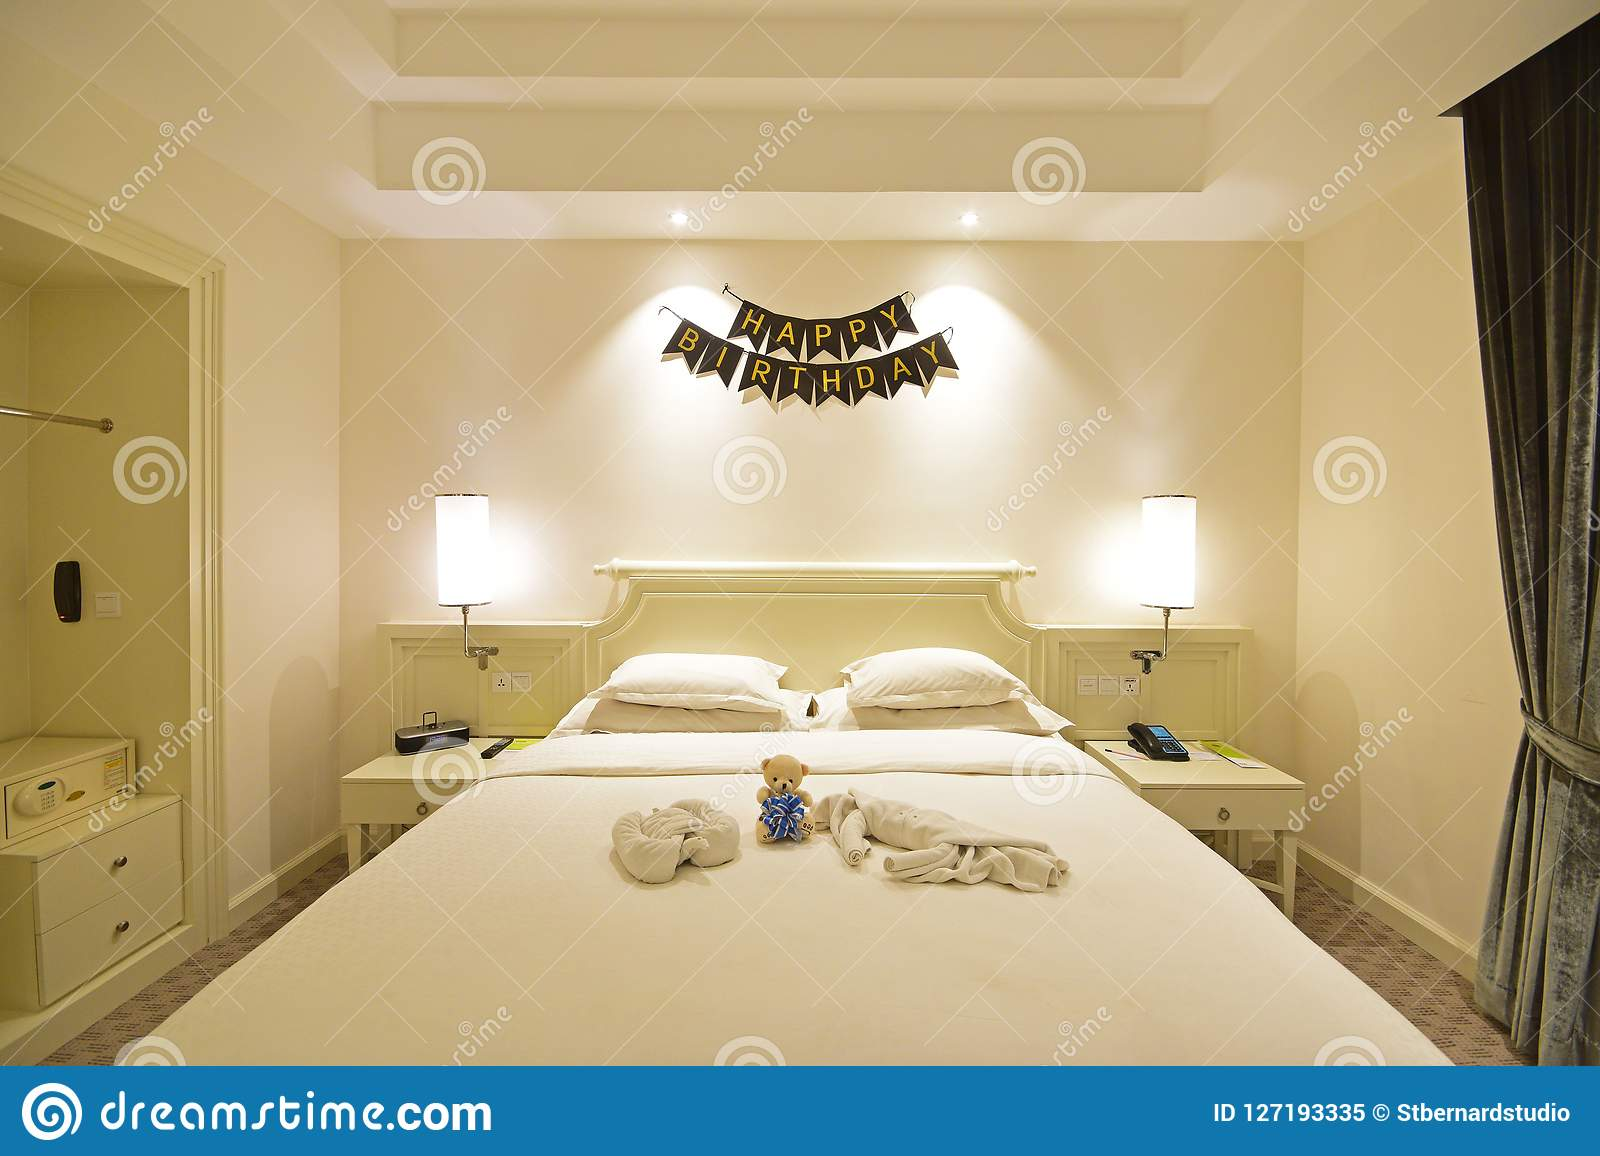 Birthday Celebration In A Hotel Room Suite With Decoration On The